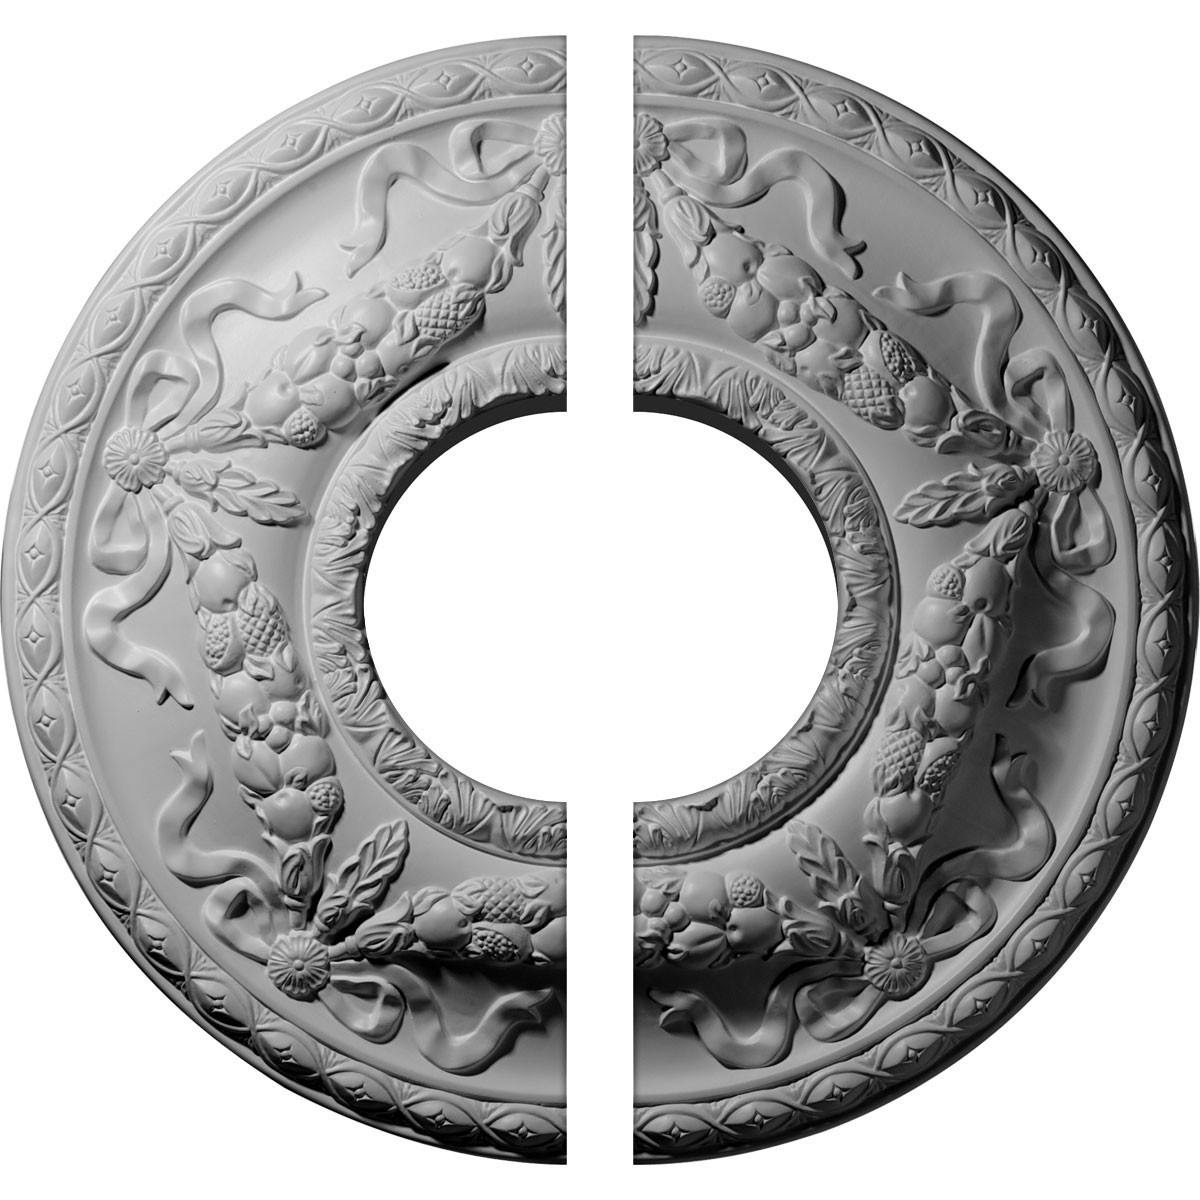 """EM-CM26HU2 - 22 1/8""""OD x 7 1/4""""ID x 1 3/4""""P Hurley Ceiling Medallion, Two Piece (Fits Canopies up to 7 1/4"""")"""